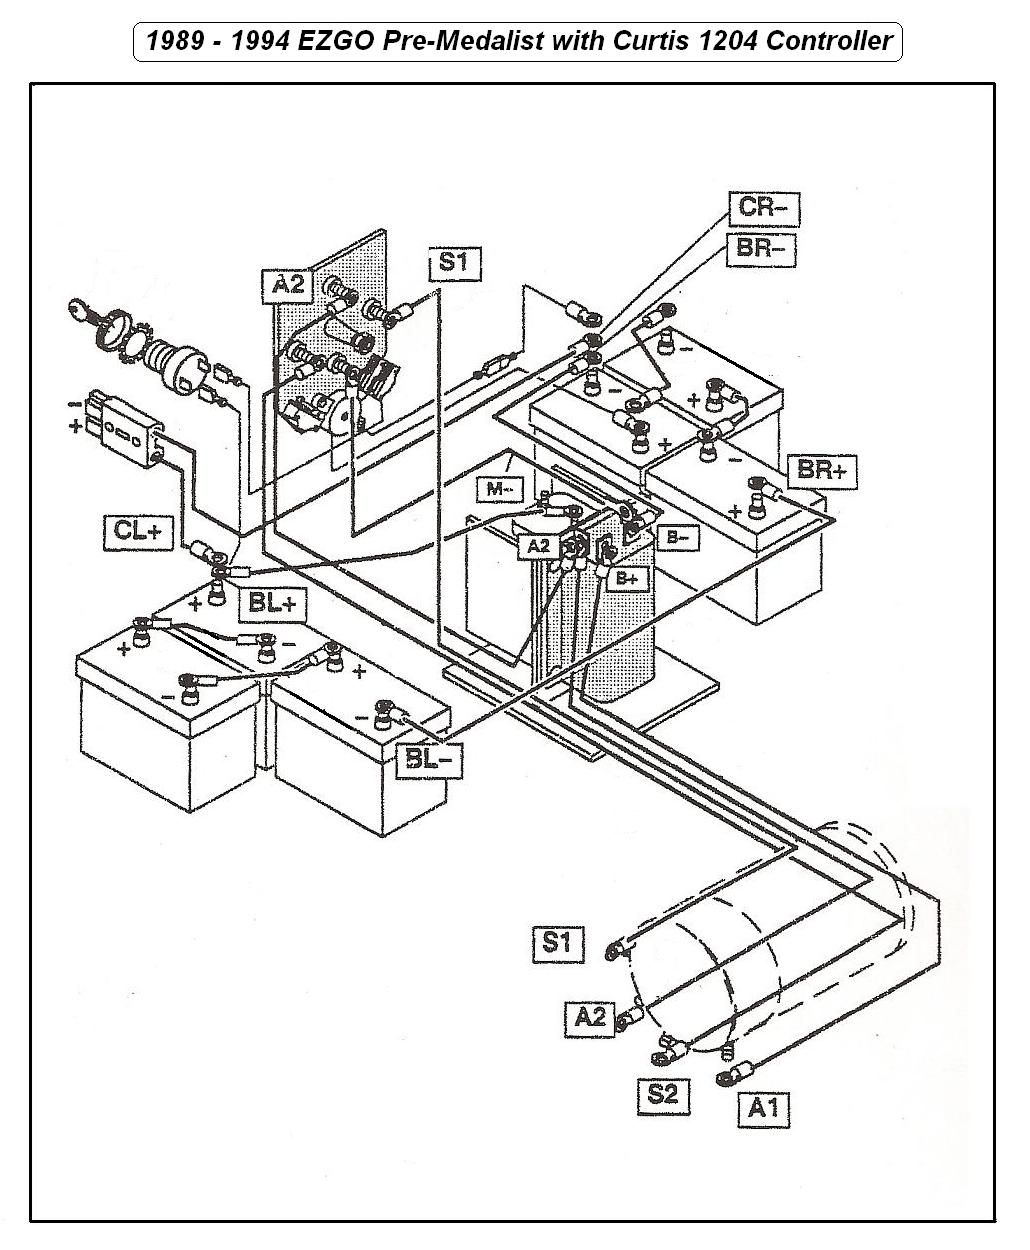 Light Switch Wiring Diagram For 1989 Club Car Electrical Diagrams Kenworth Txt 1996 Opinions About U2022 89